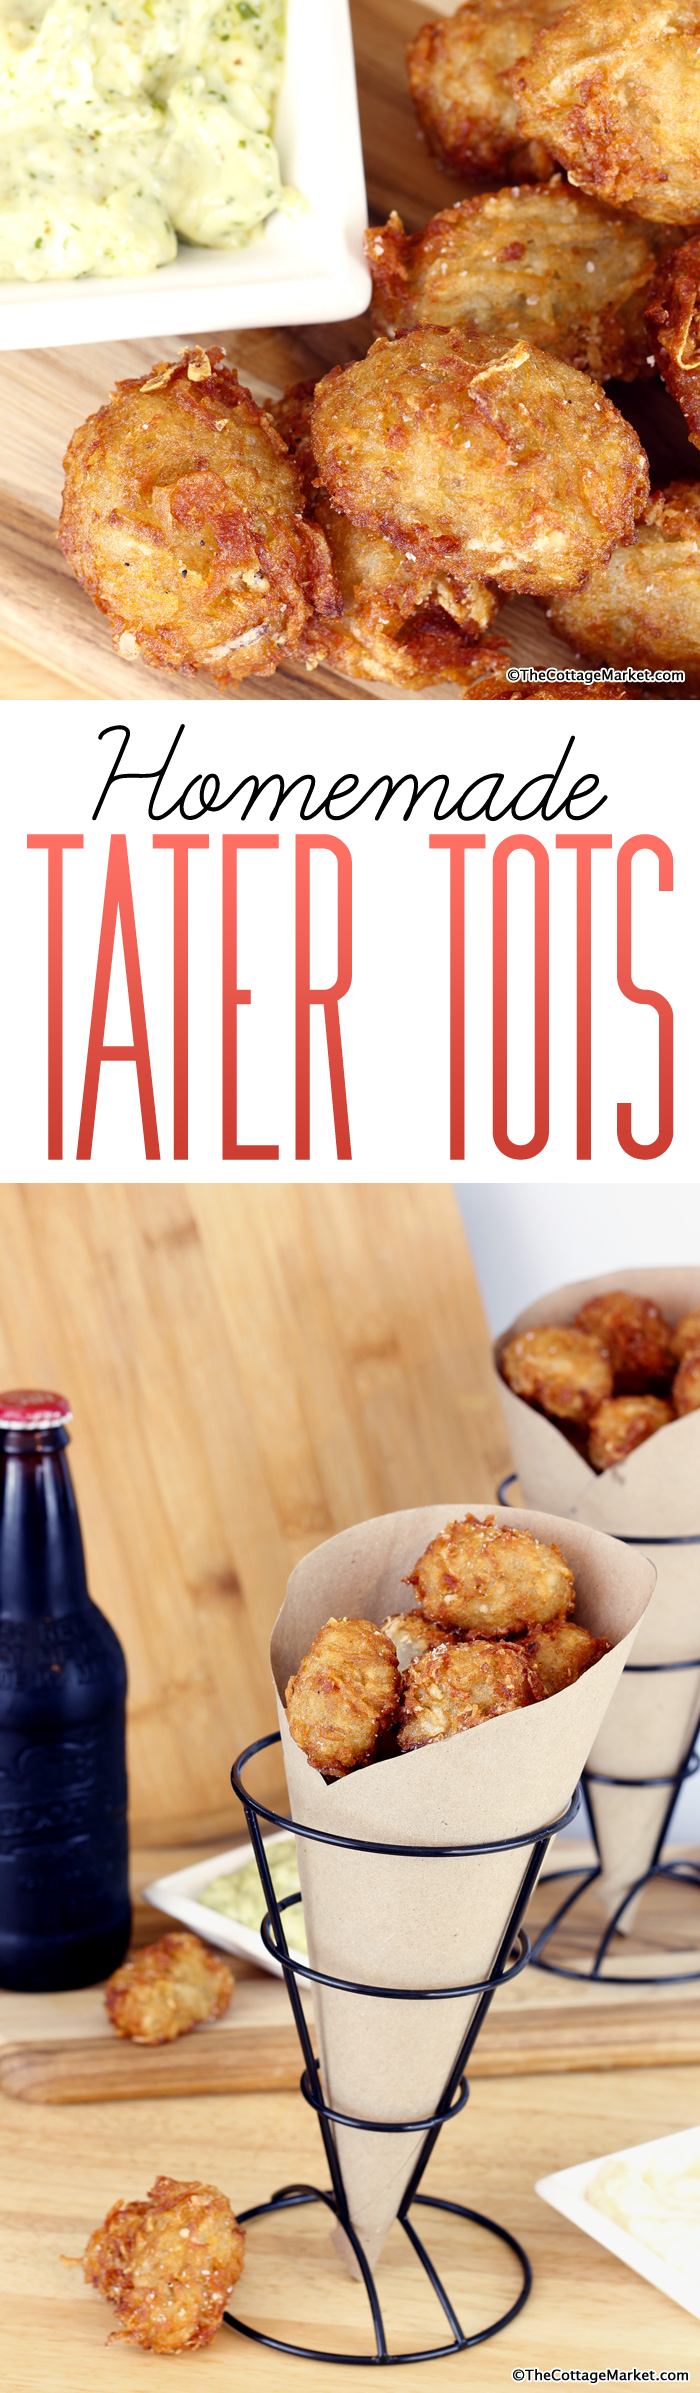 tatertots-Tower